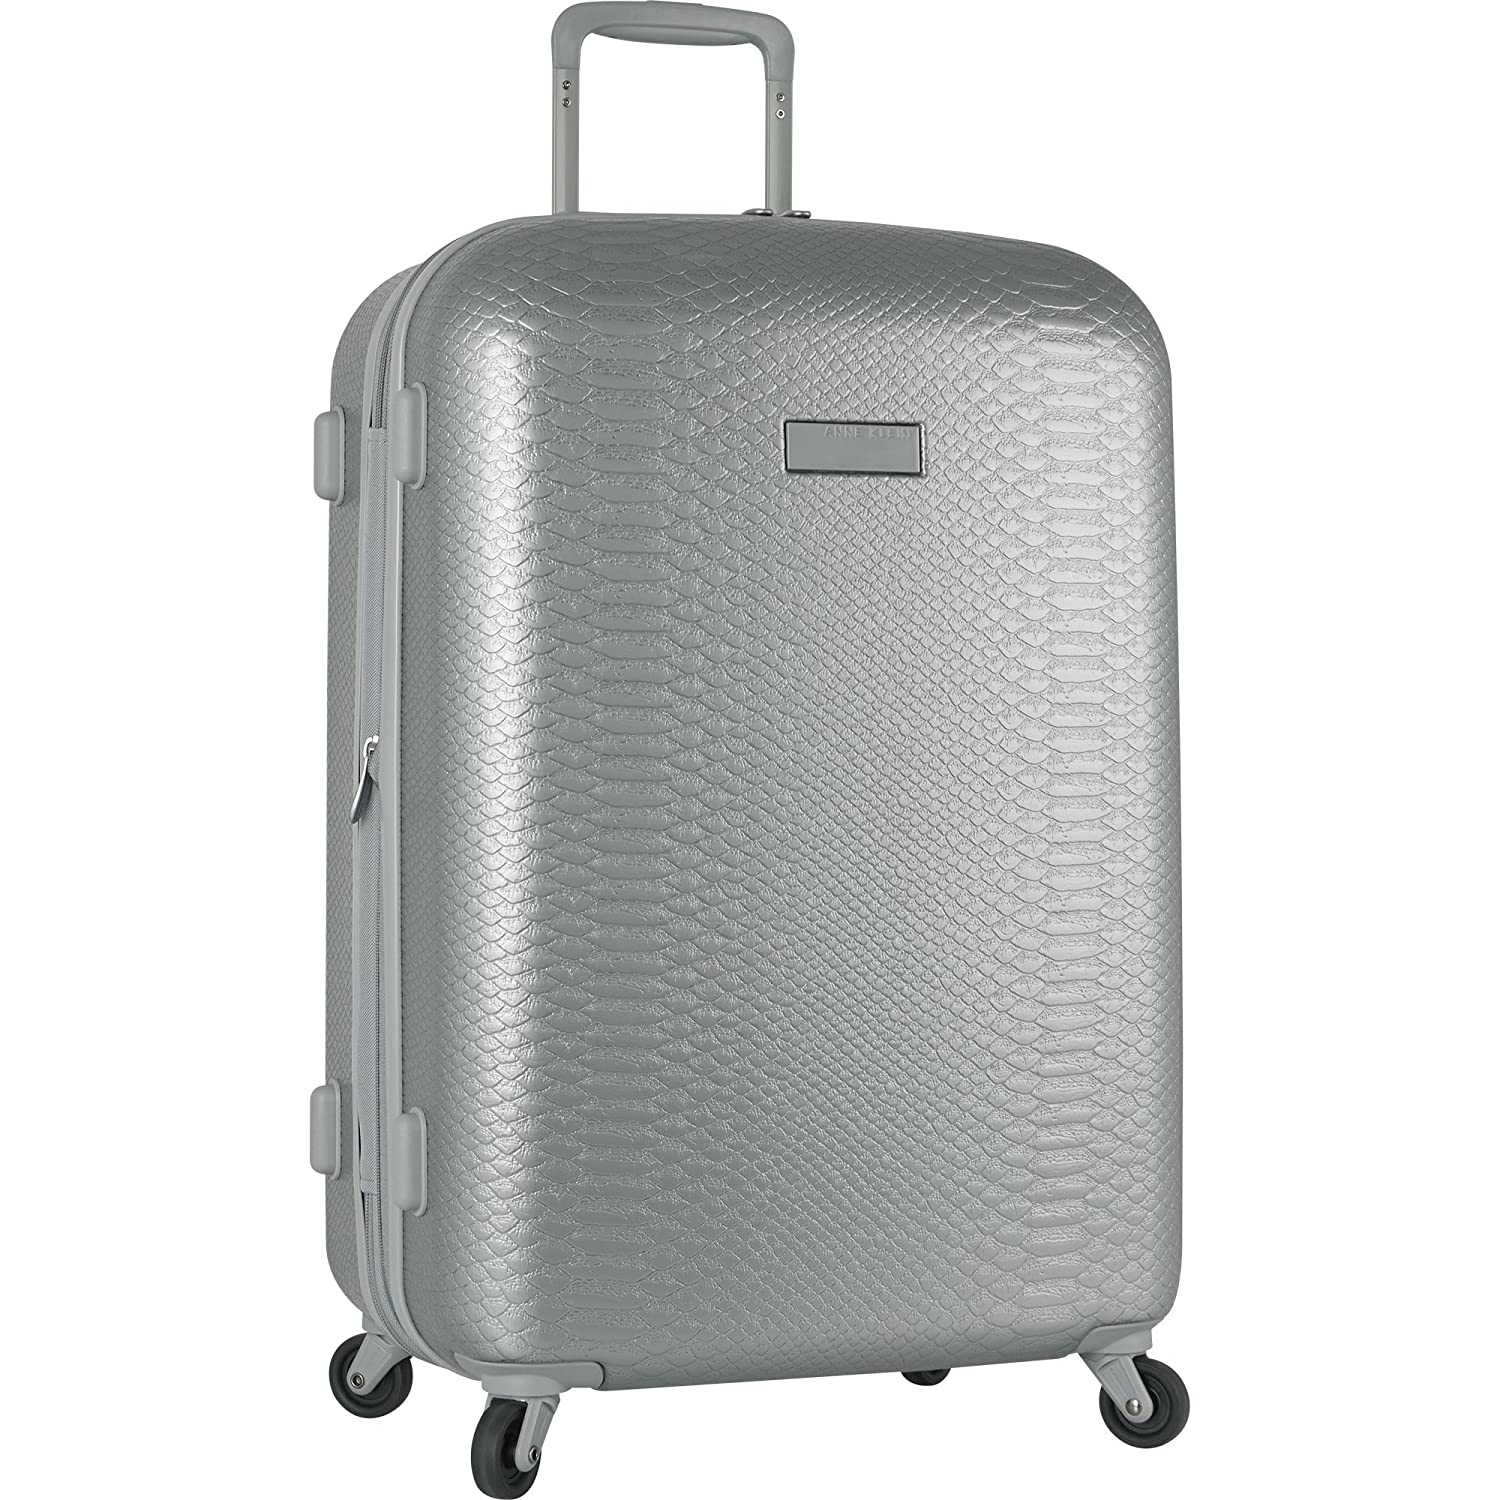 Image of Luggage Anne Klein 29' Hardside Spinner Luggage, Silver